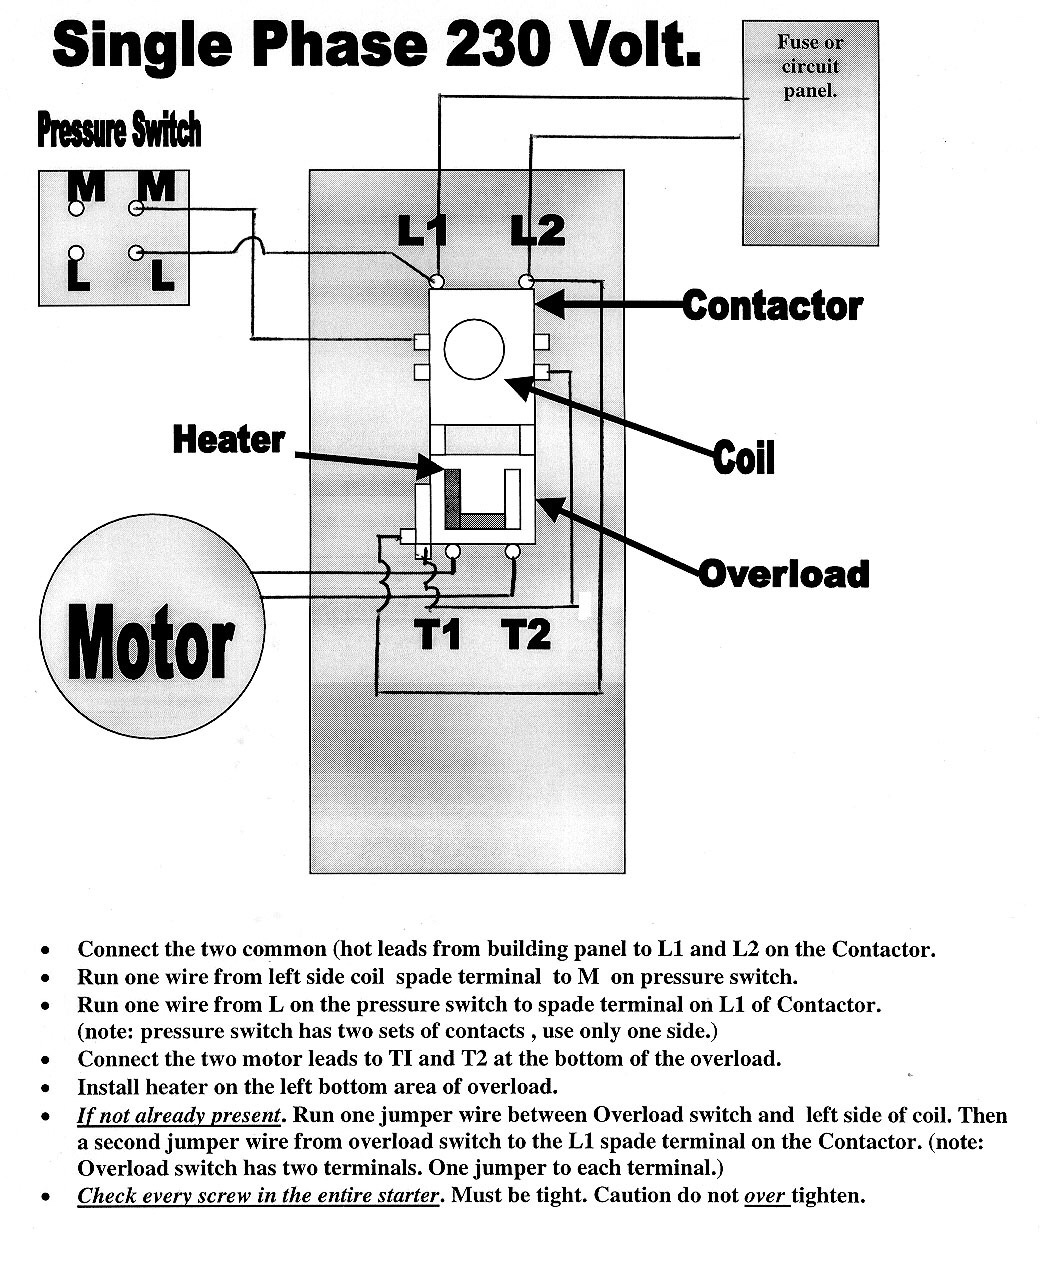 Quincy compressor wiring diagram on 3 phase air compressor wiring diagram efcaviation com quincy air compressor wiring diagram A 240 Volt Motor Starter Wiring